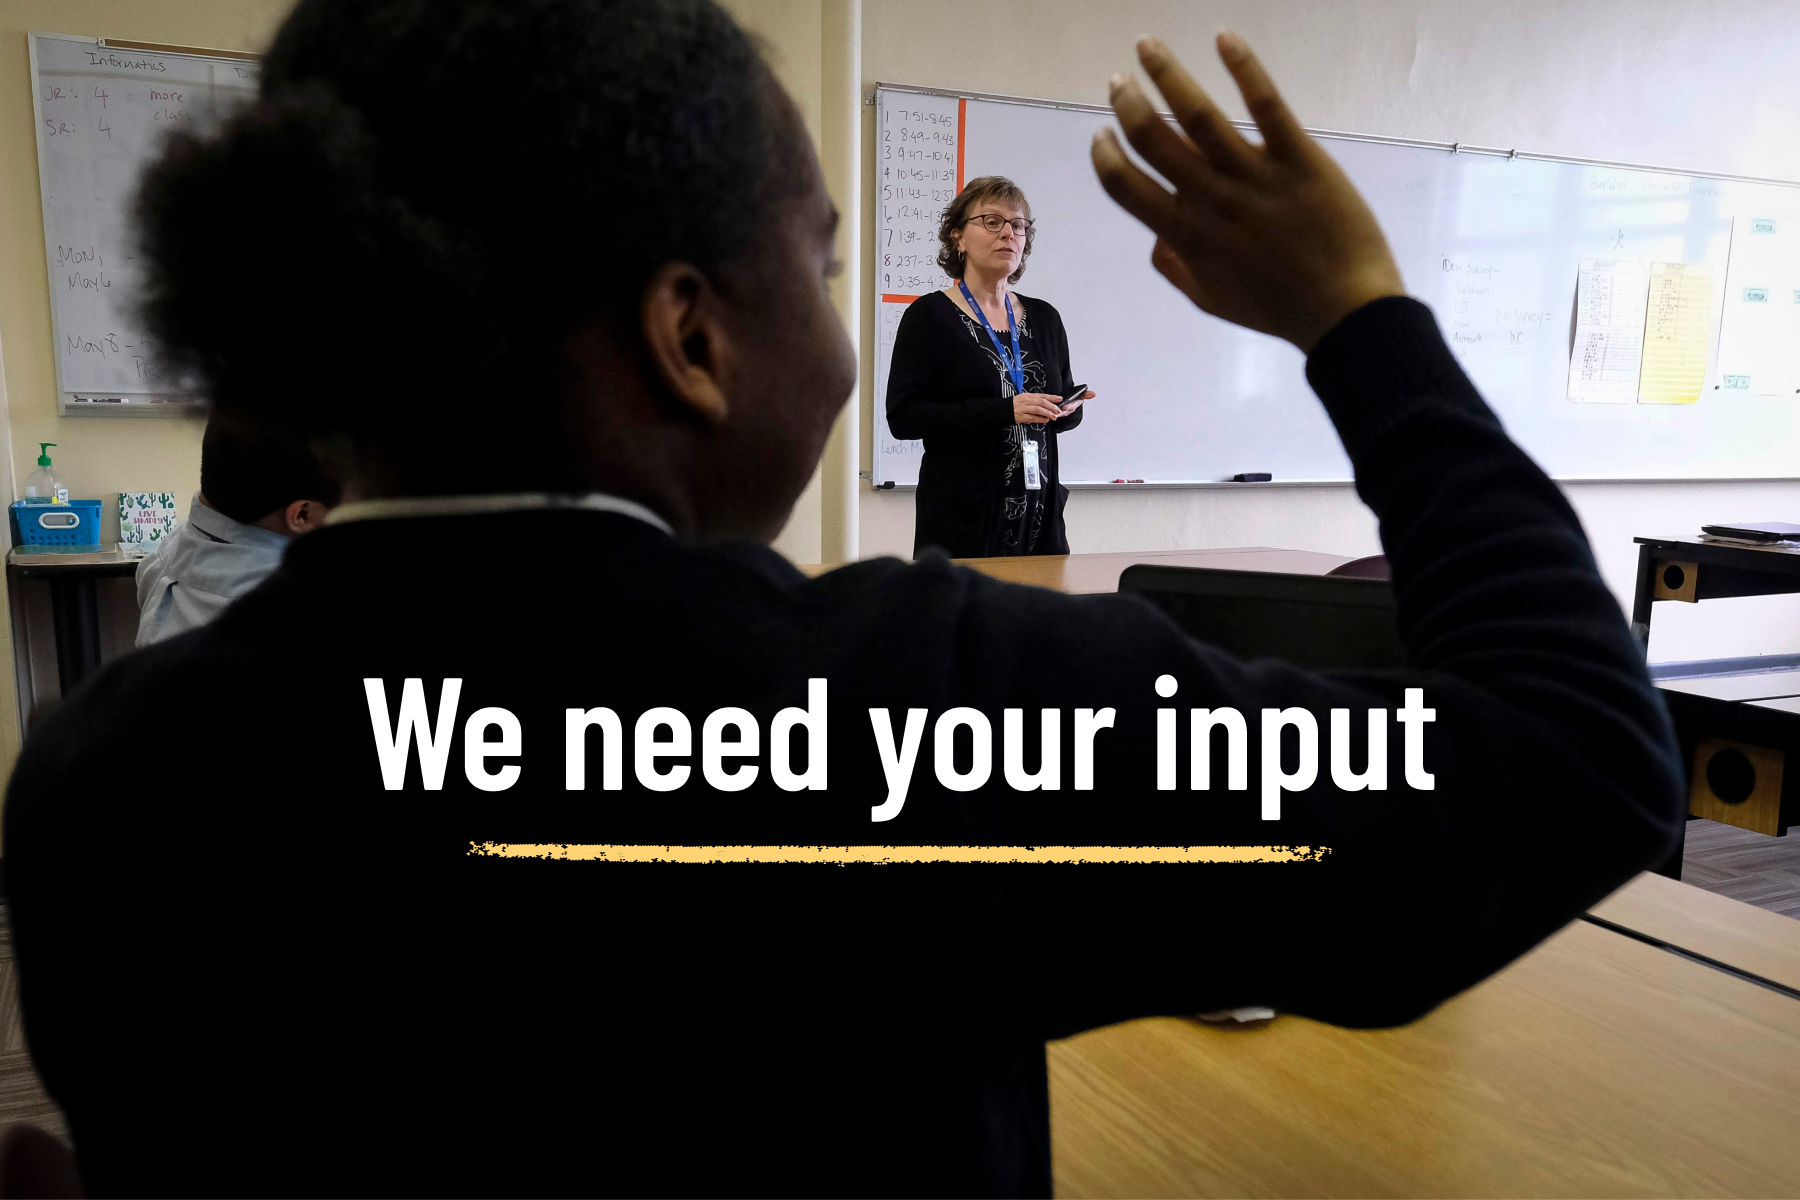 A student raises her hand during class. Text overlay on the image reads: We need your input.